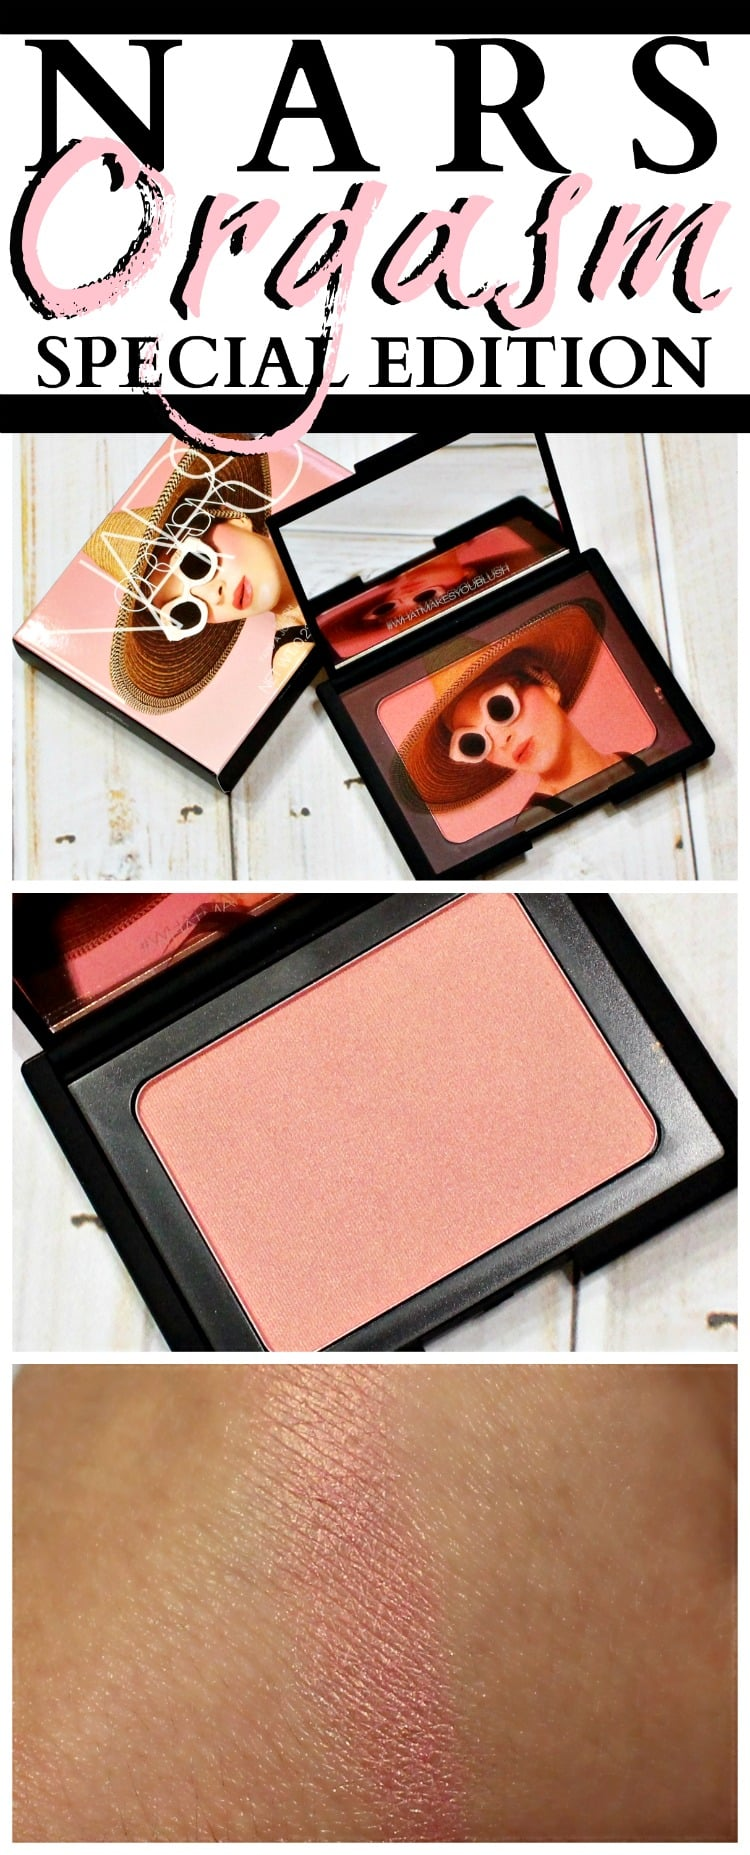 NARS Orgasm Blush Special Edition swatches pinterest